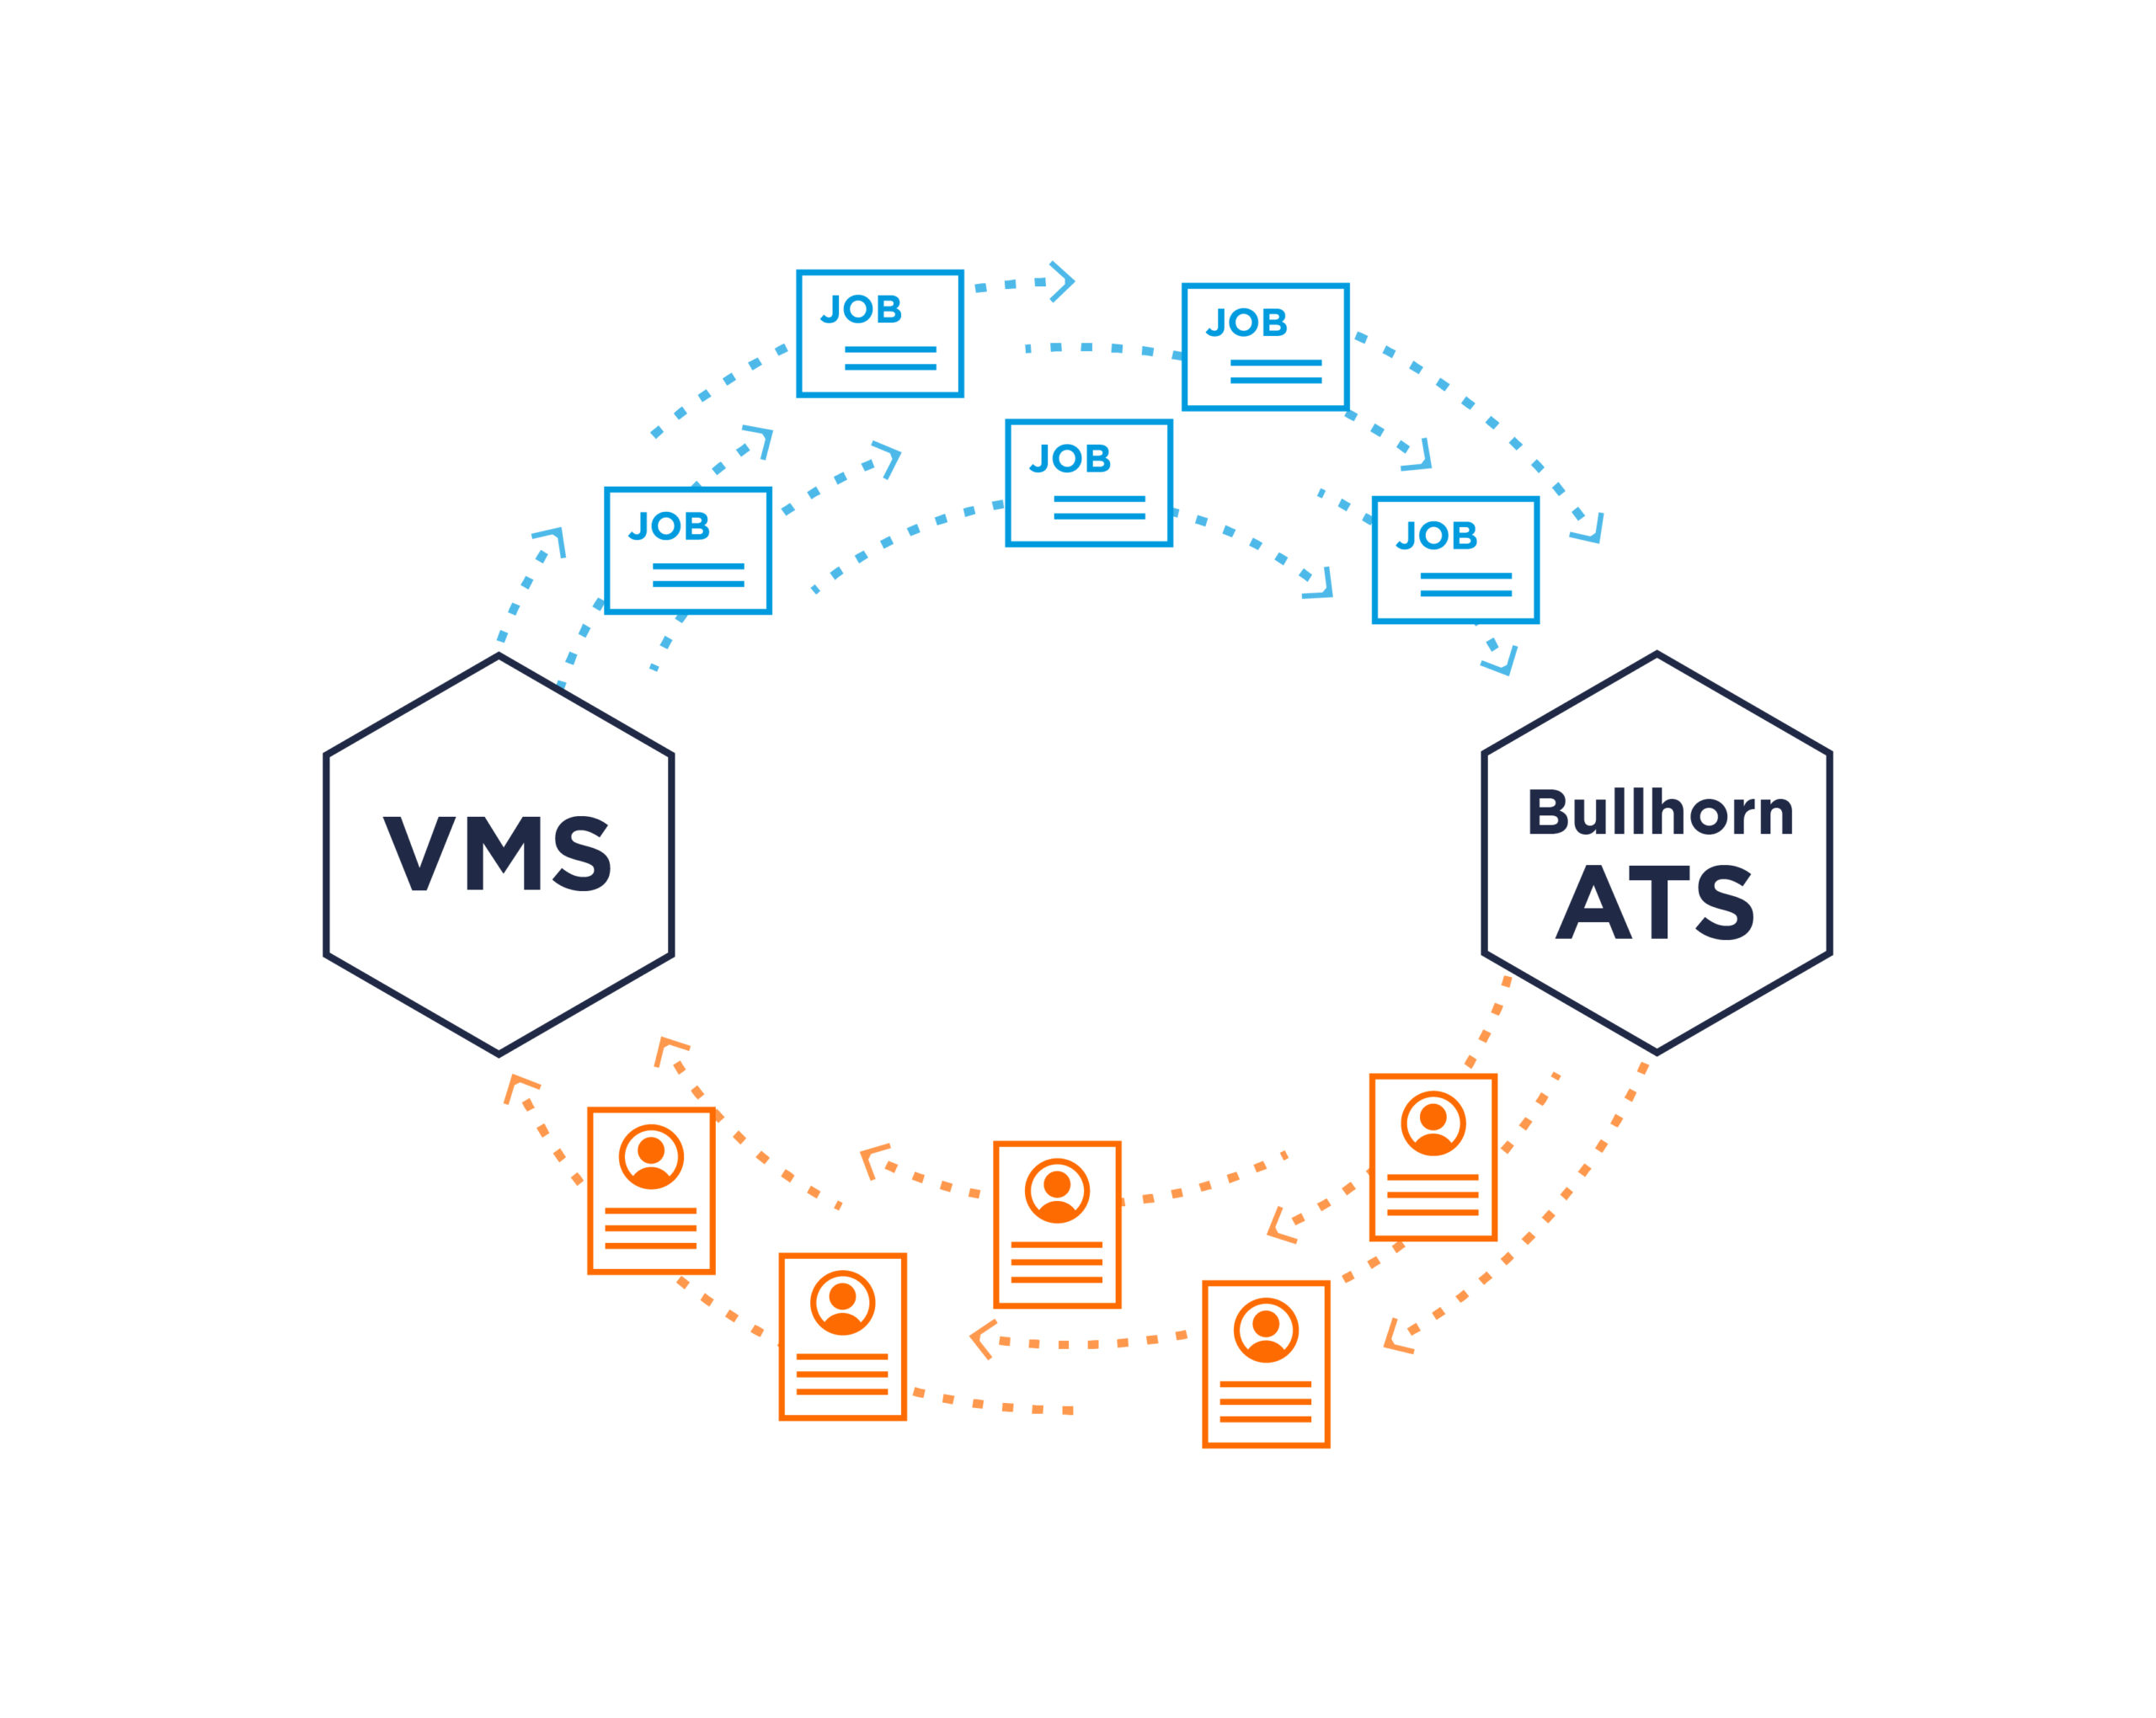 diagram_ATS-VMS_V3